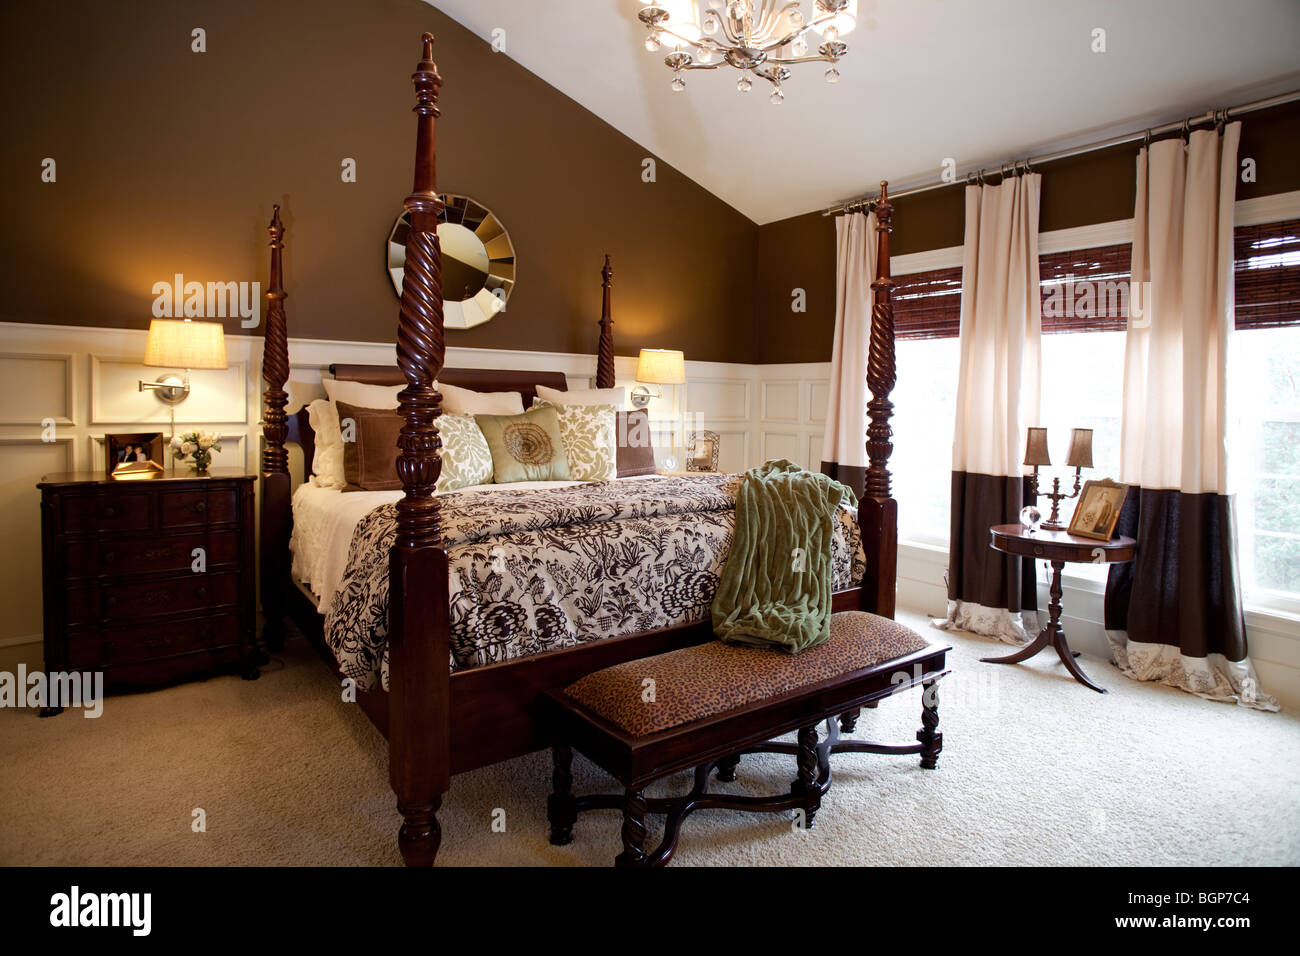 Master Bedroom With King Size Four Poster Bed Covered With Matching